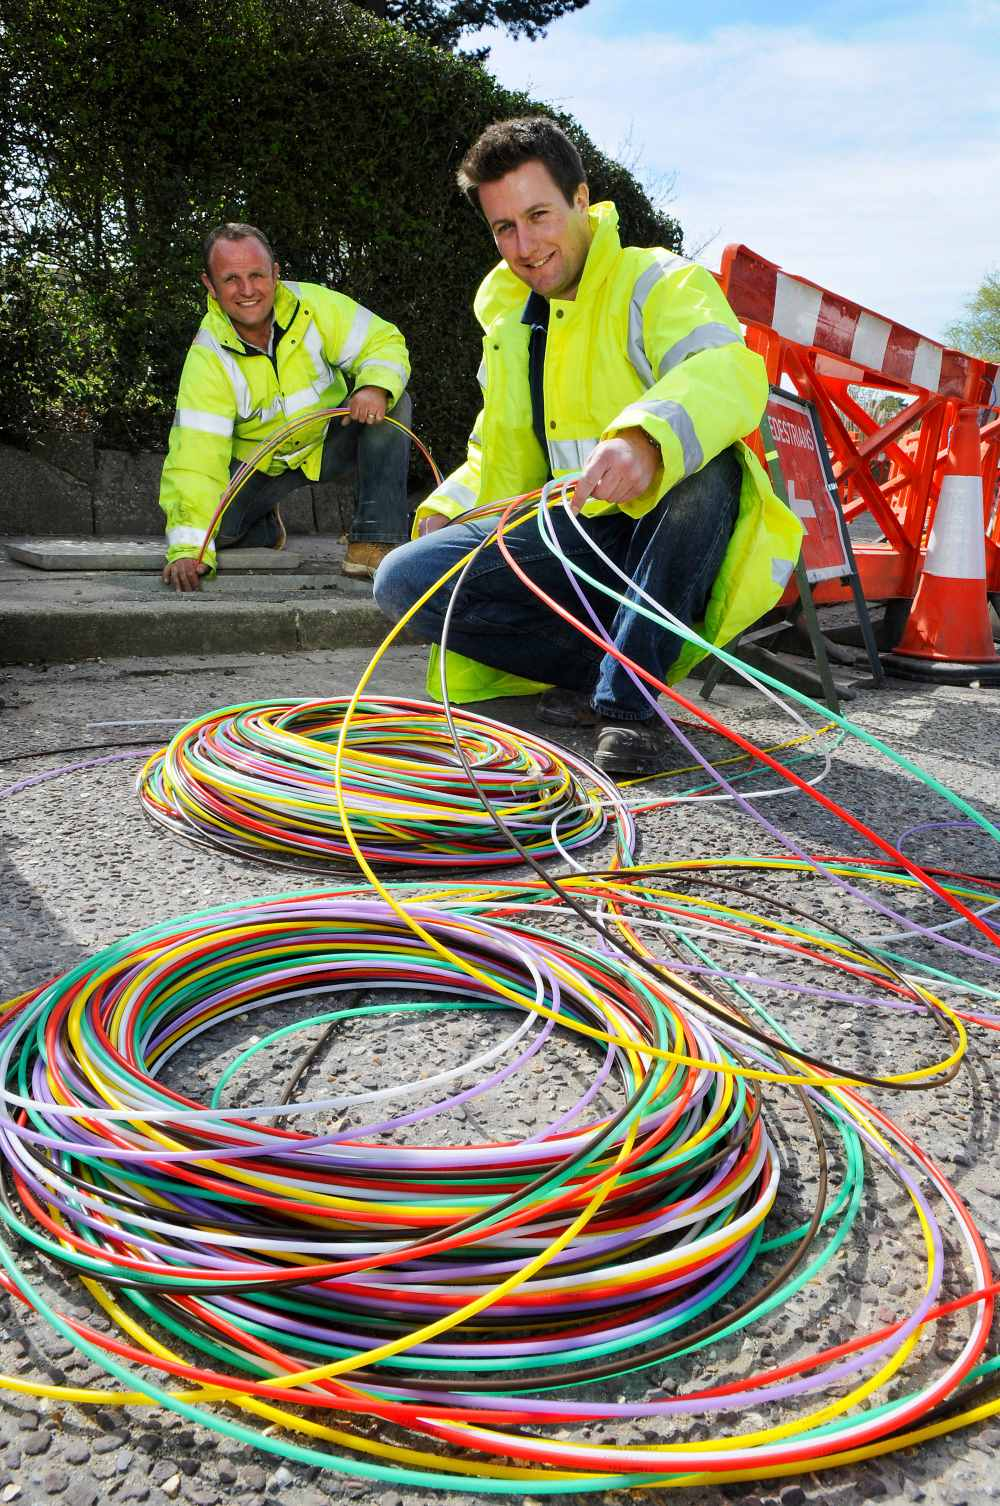 Coventry?s full fibre transformation to deliver multimillion pound economic growth